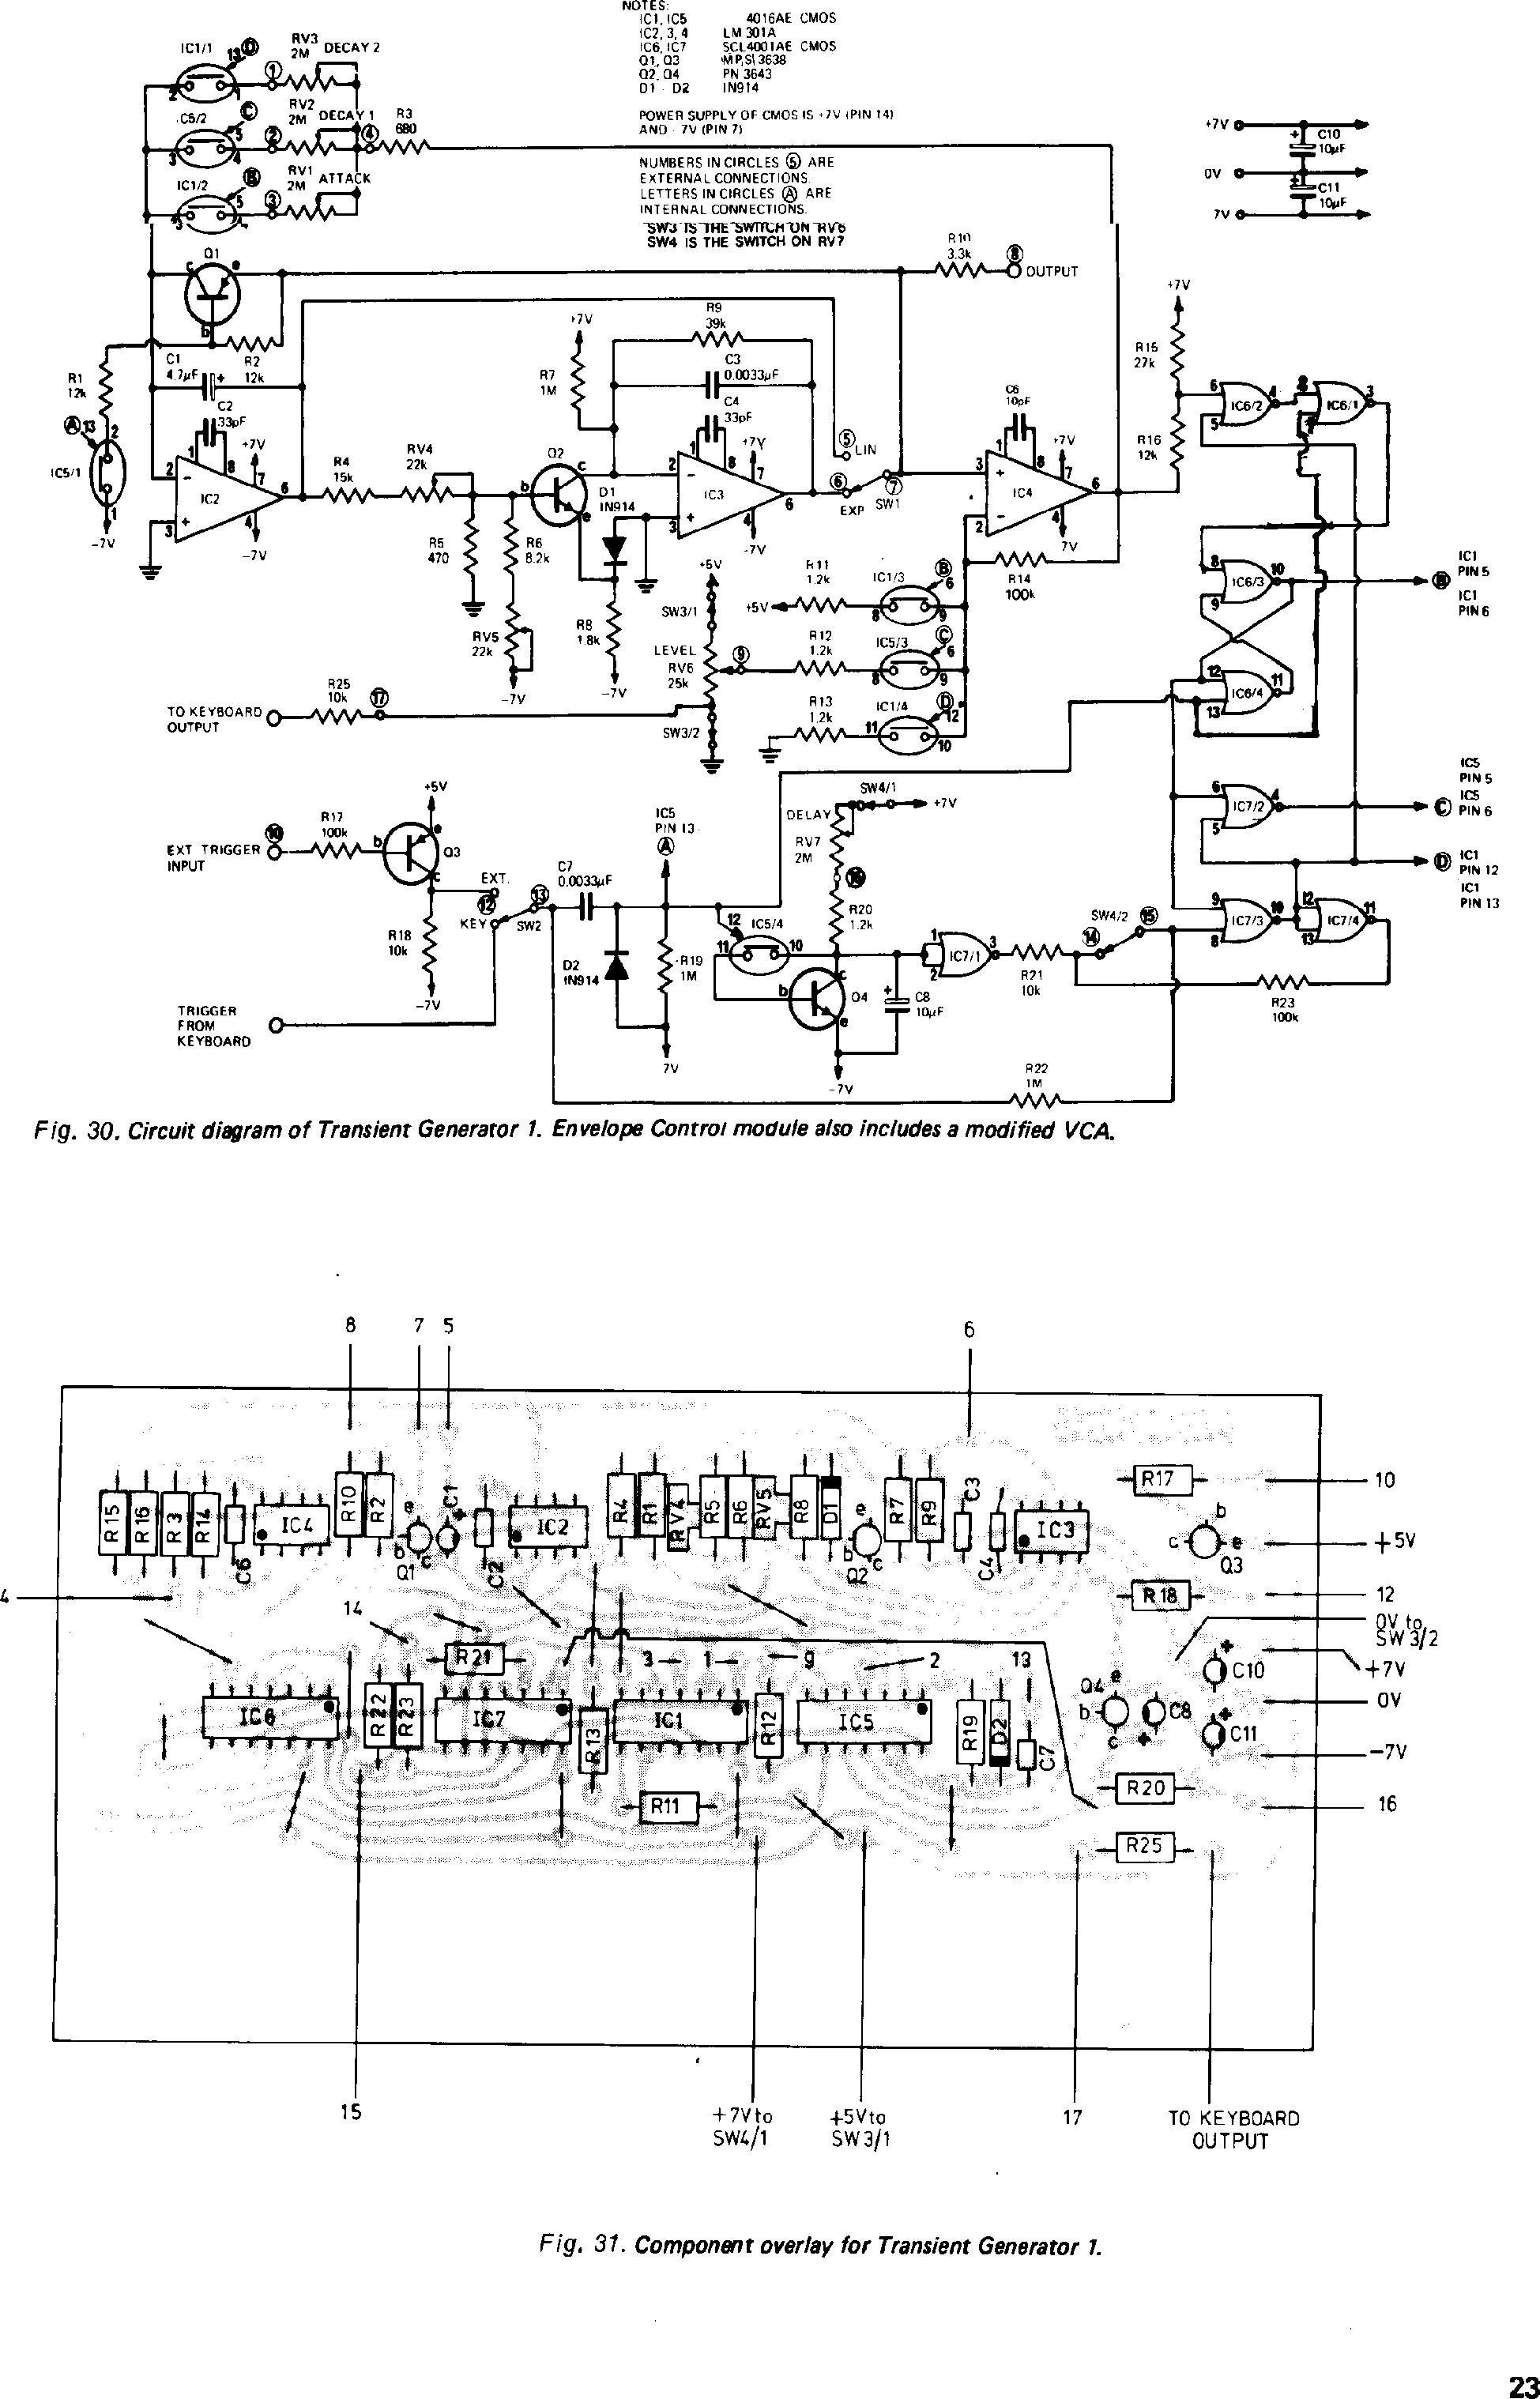 1948 ford 8n 12 volt conversion wiring diagram